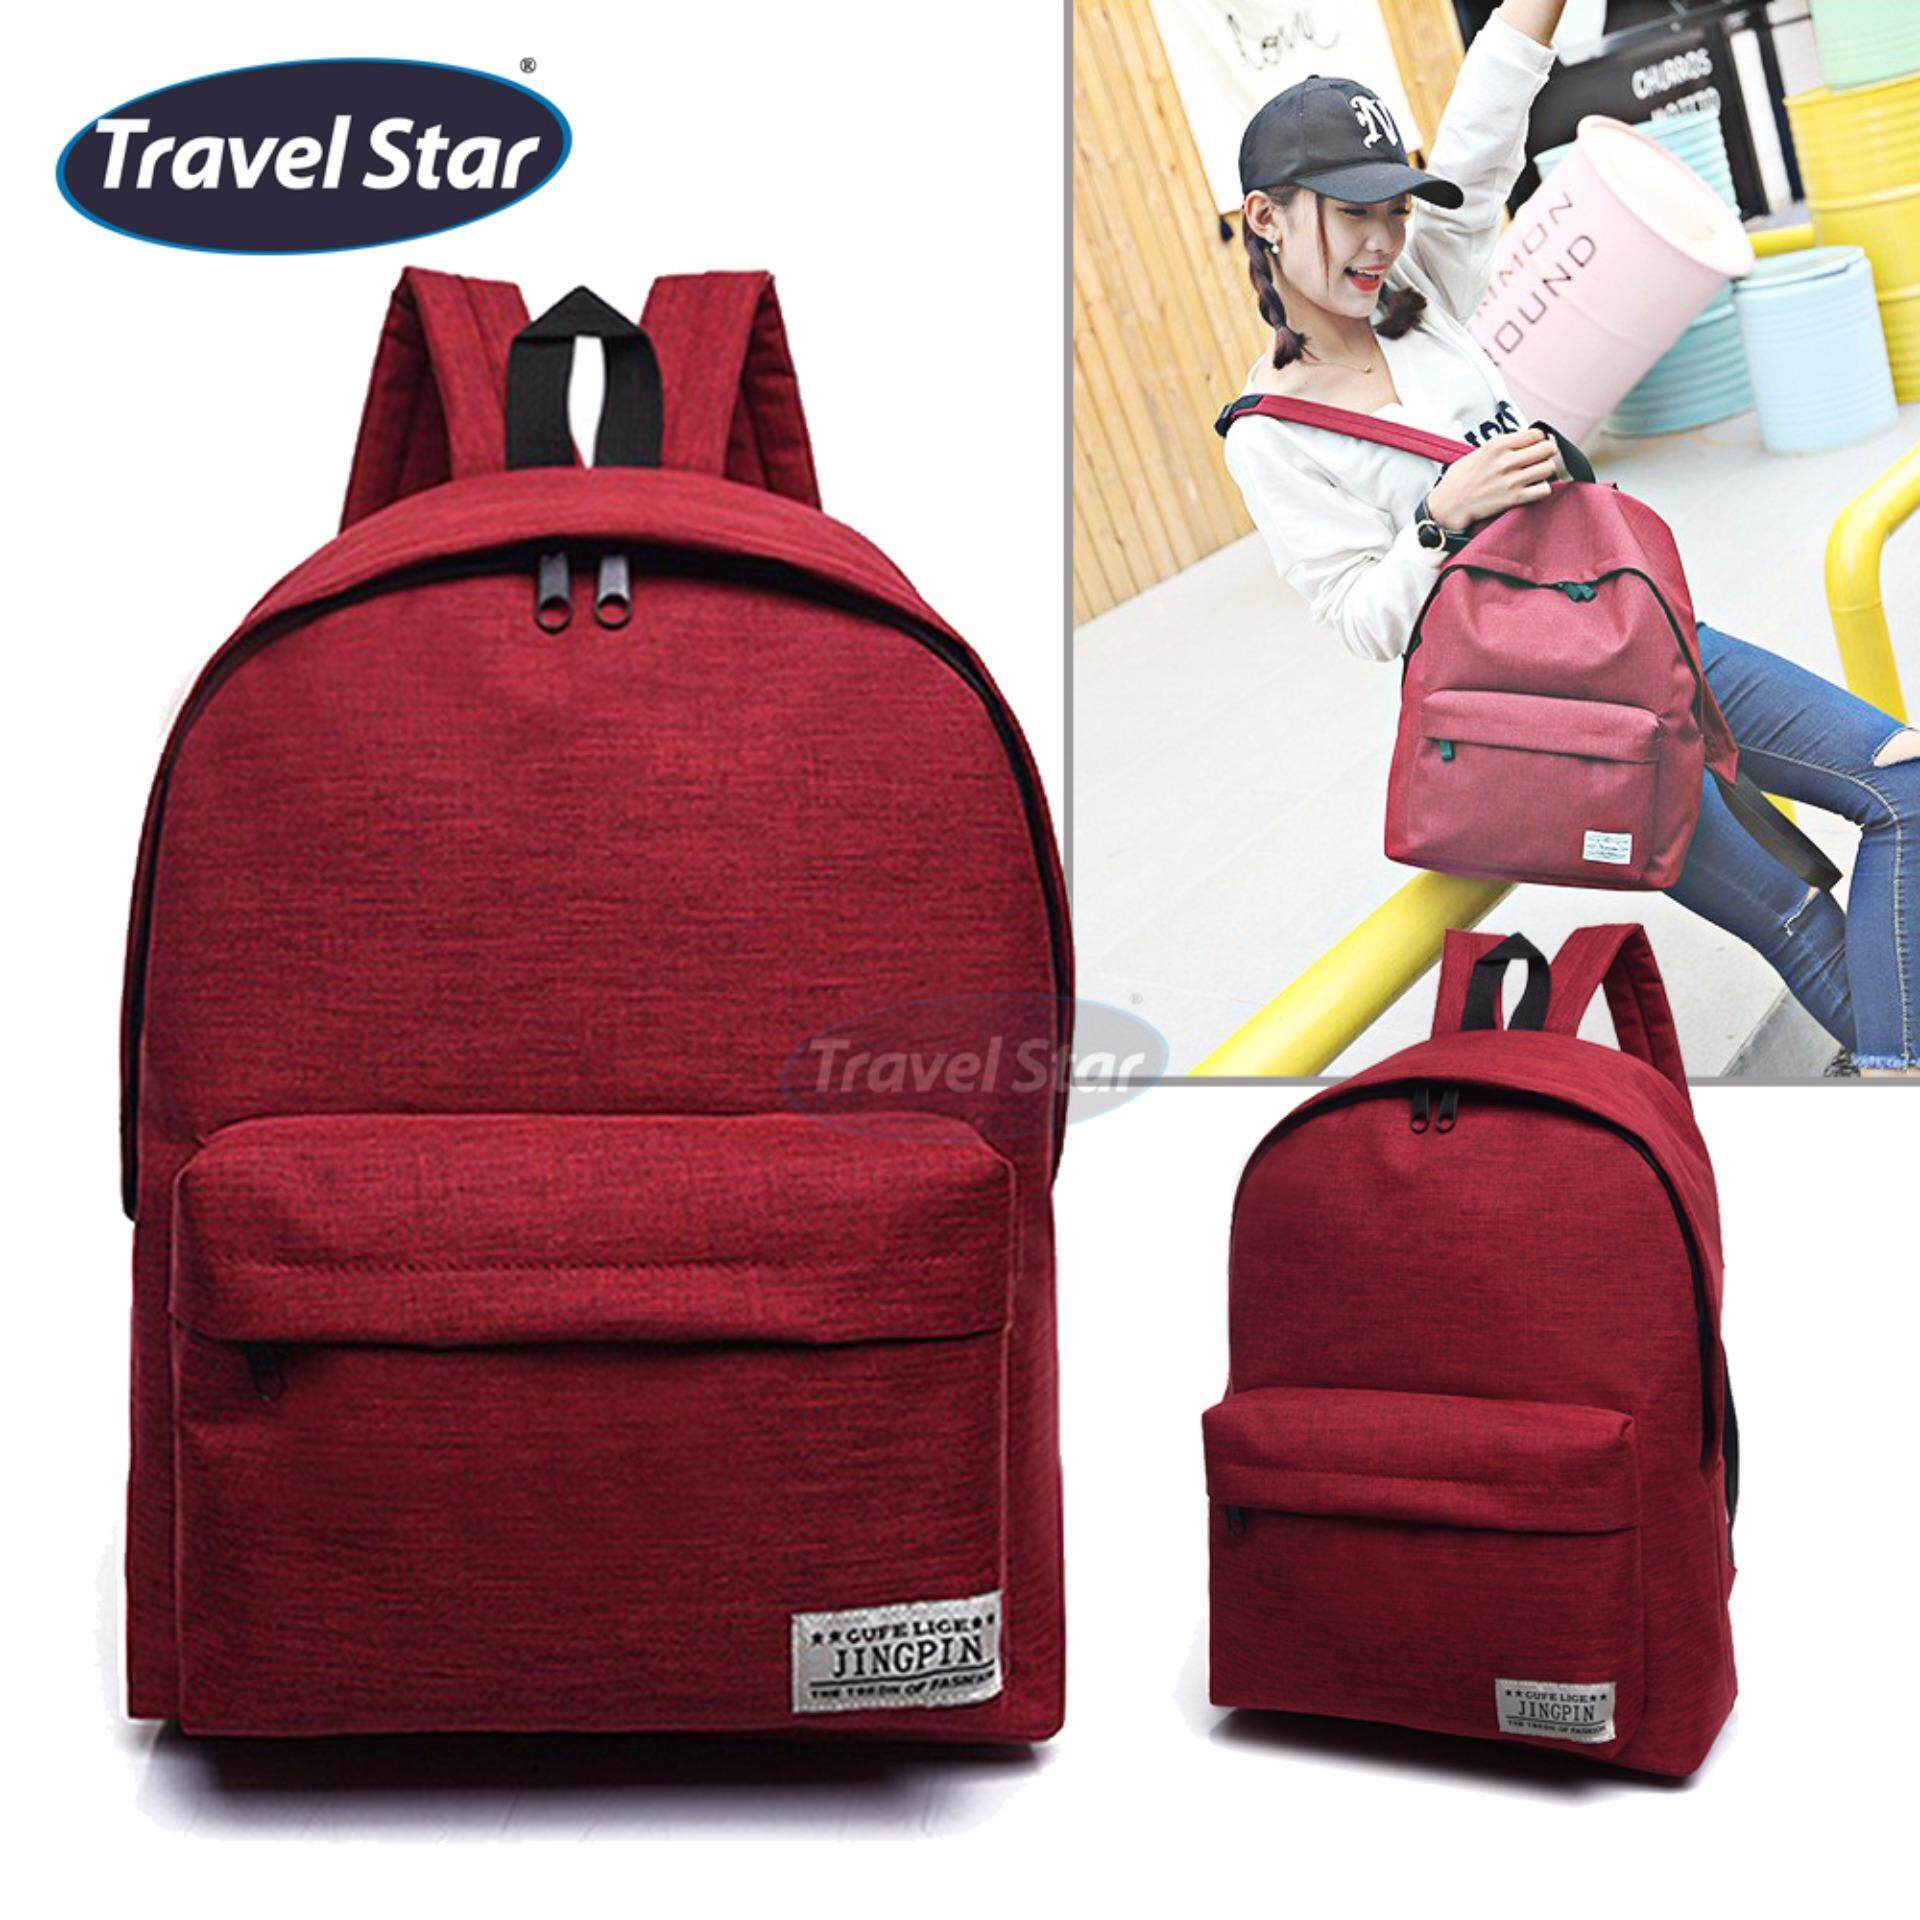 Travel Star 364 Korean Style Premium Double Strap Backpack - Red